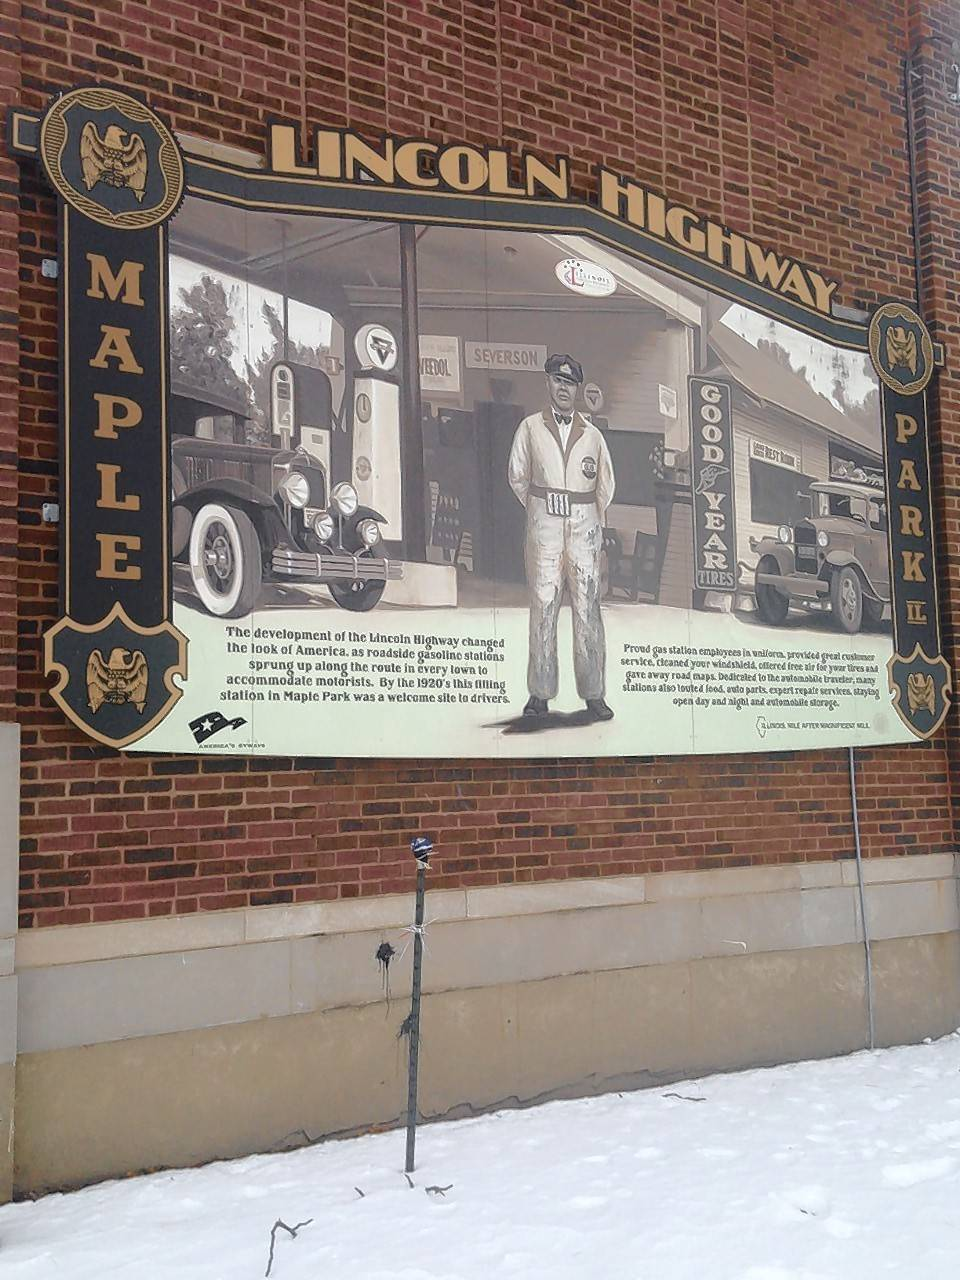 An neat old photo covering the side of Maple Park's village hall explains the significance of Maple Park in the 1920s. Located along the popular and well-traveled Lincoln Highway, Maple Park and its full service gas station was a busy oasis for motorists.